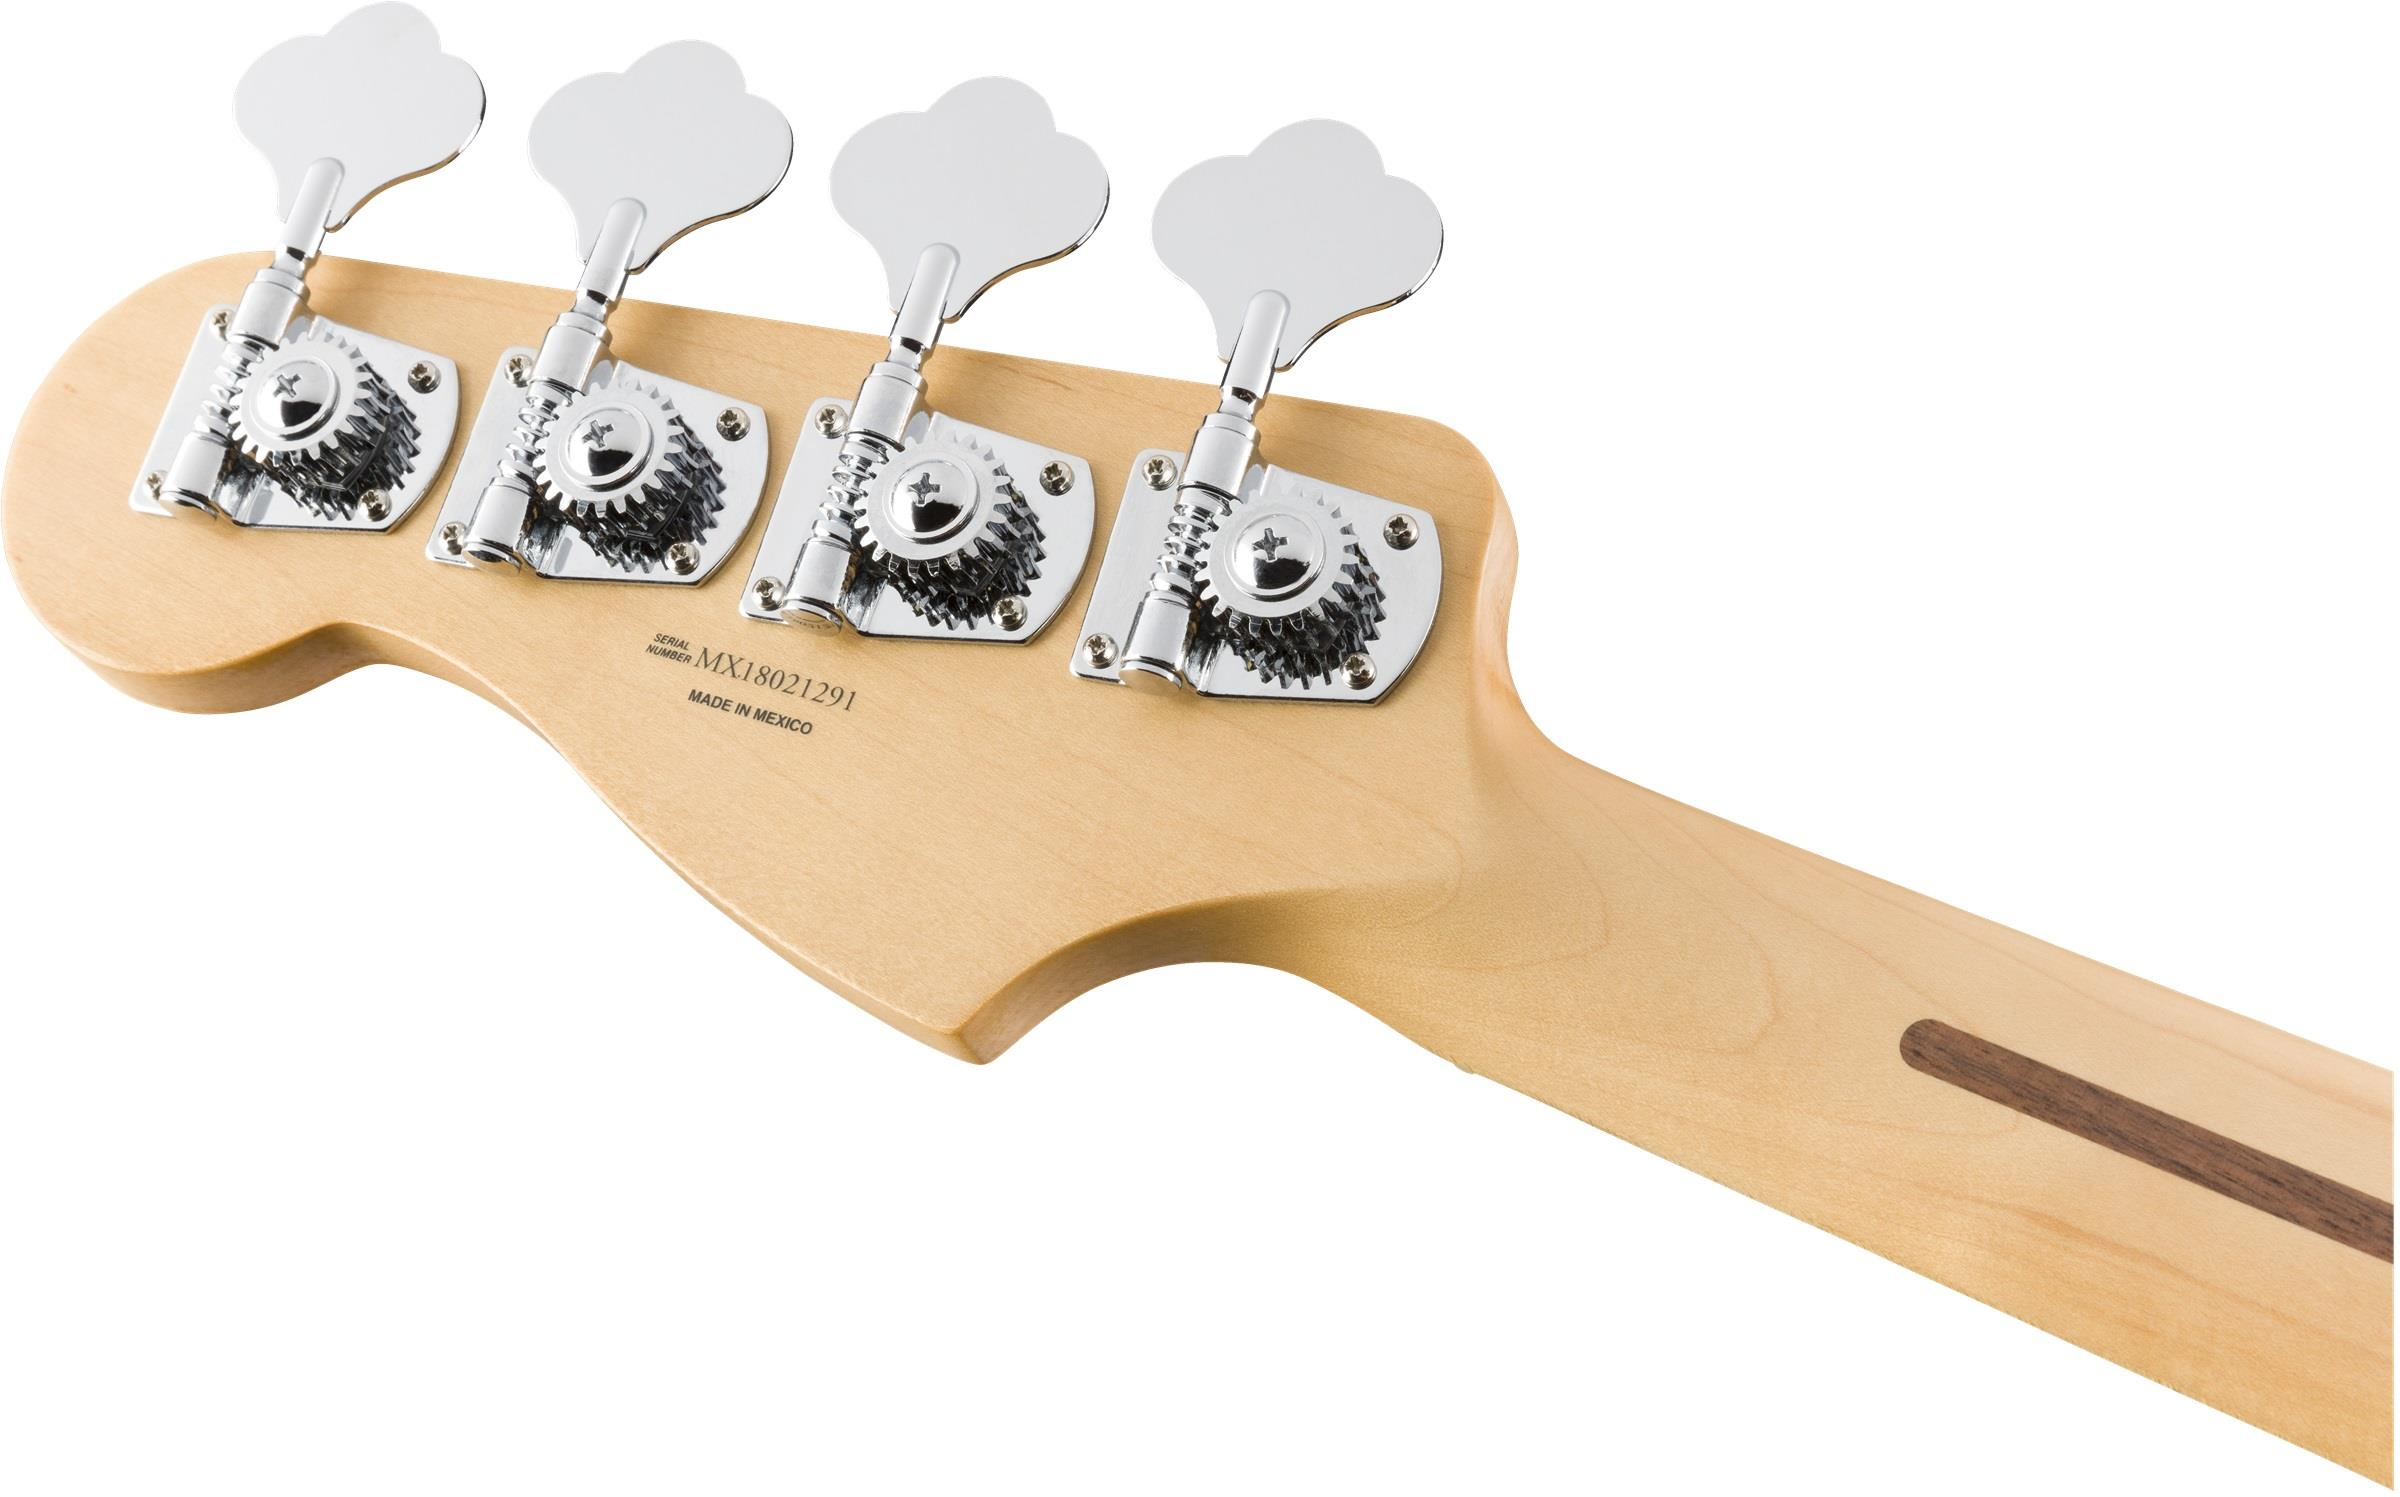 Fender Player Precision Bass Mn Buttercream Keymusic Accurate Tone Control 4 String Guitar